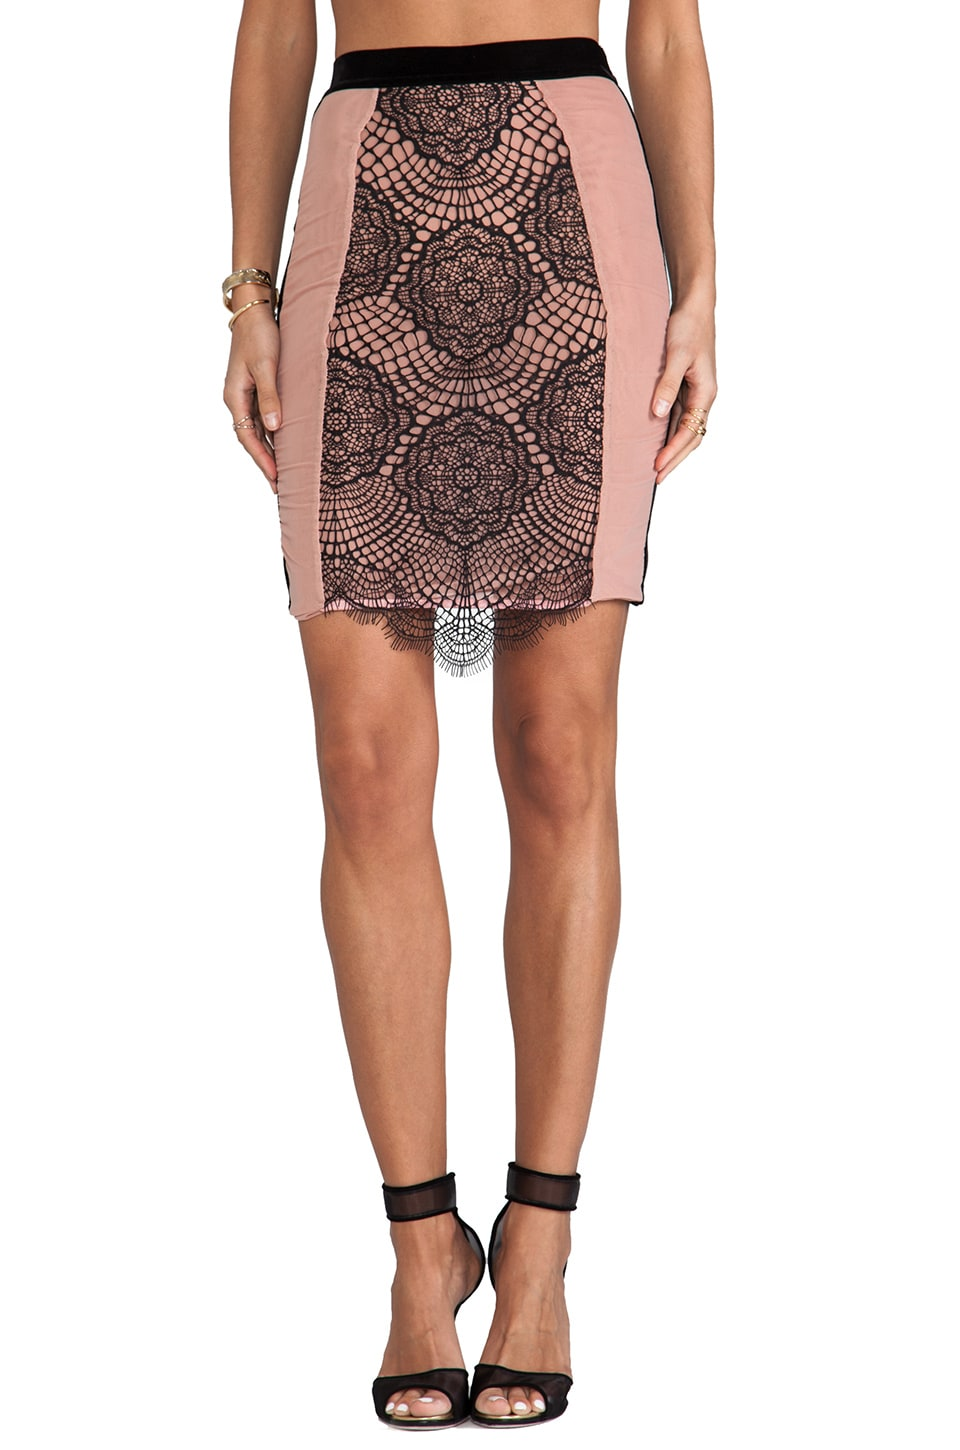 For Love & Lemons Very French High-Waist Slip Skirt in Blush/Black